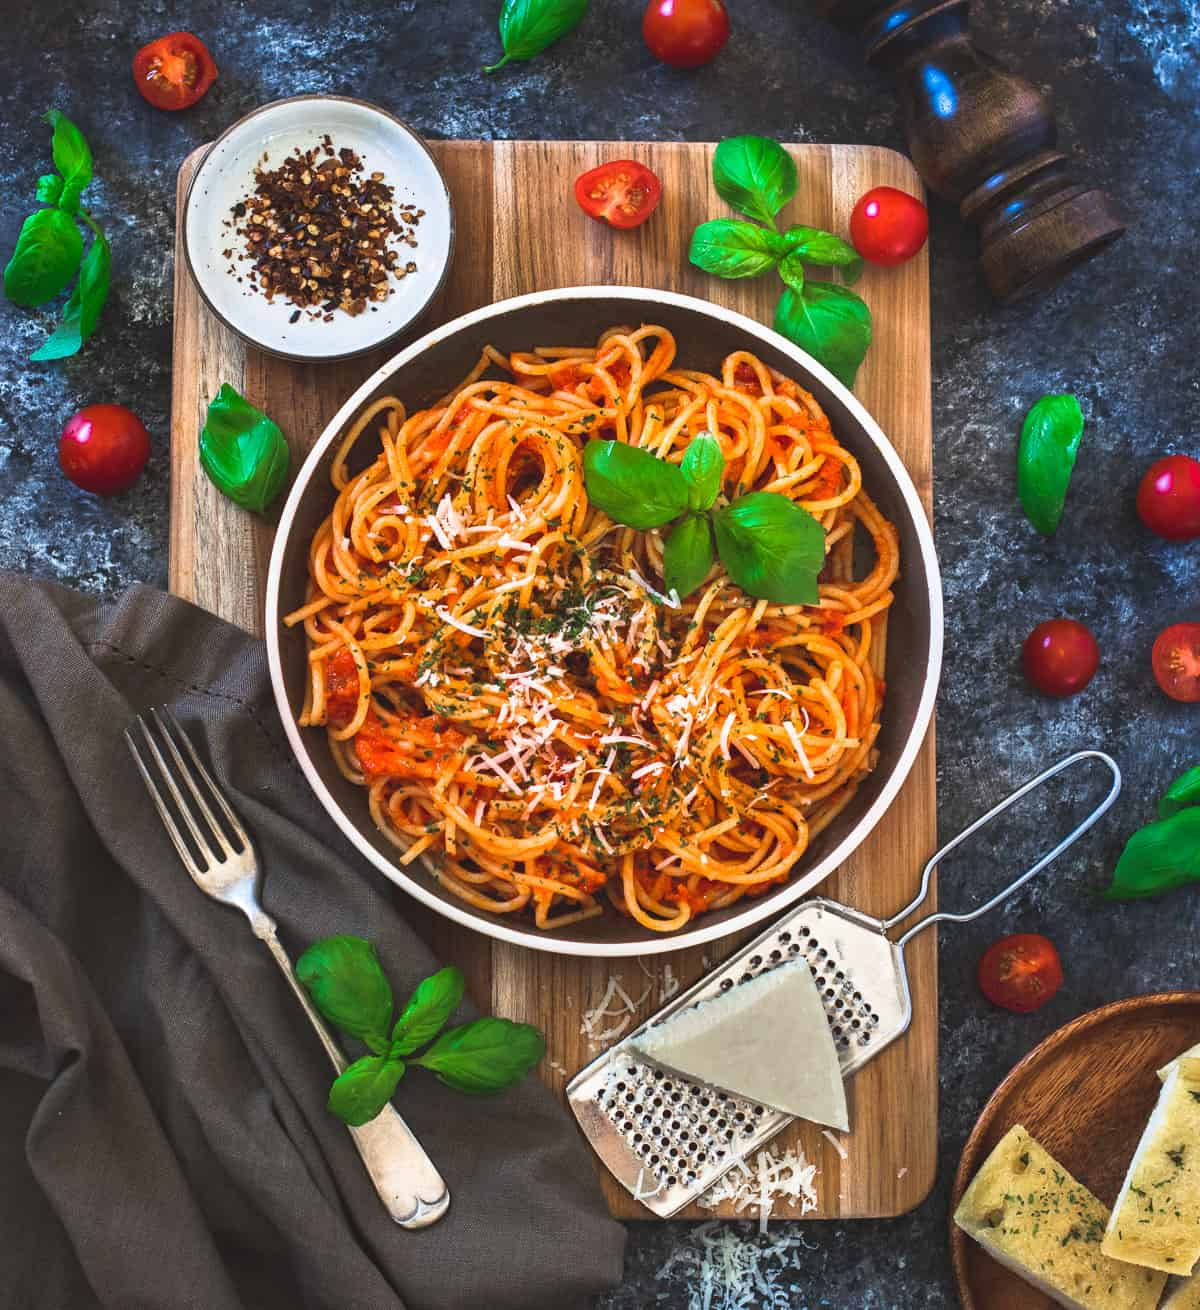 Pasta arrabiata served with cheese , red chili flakes and a fork